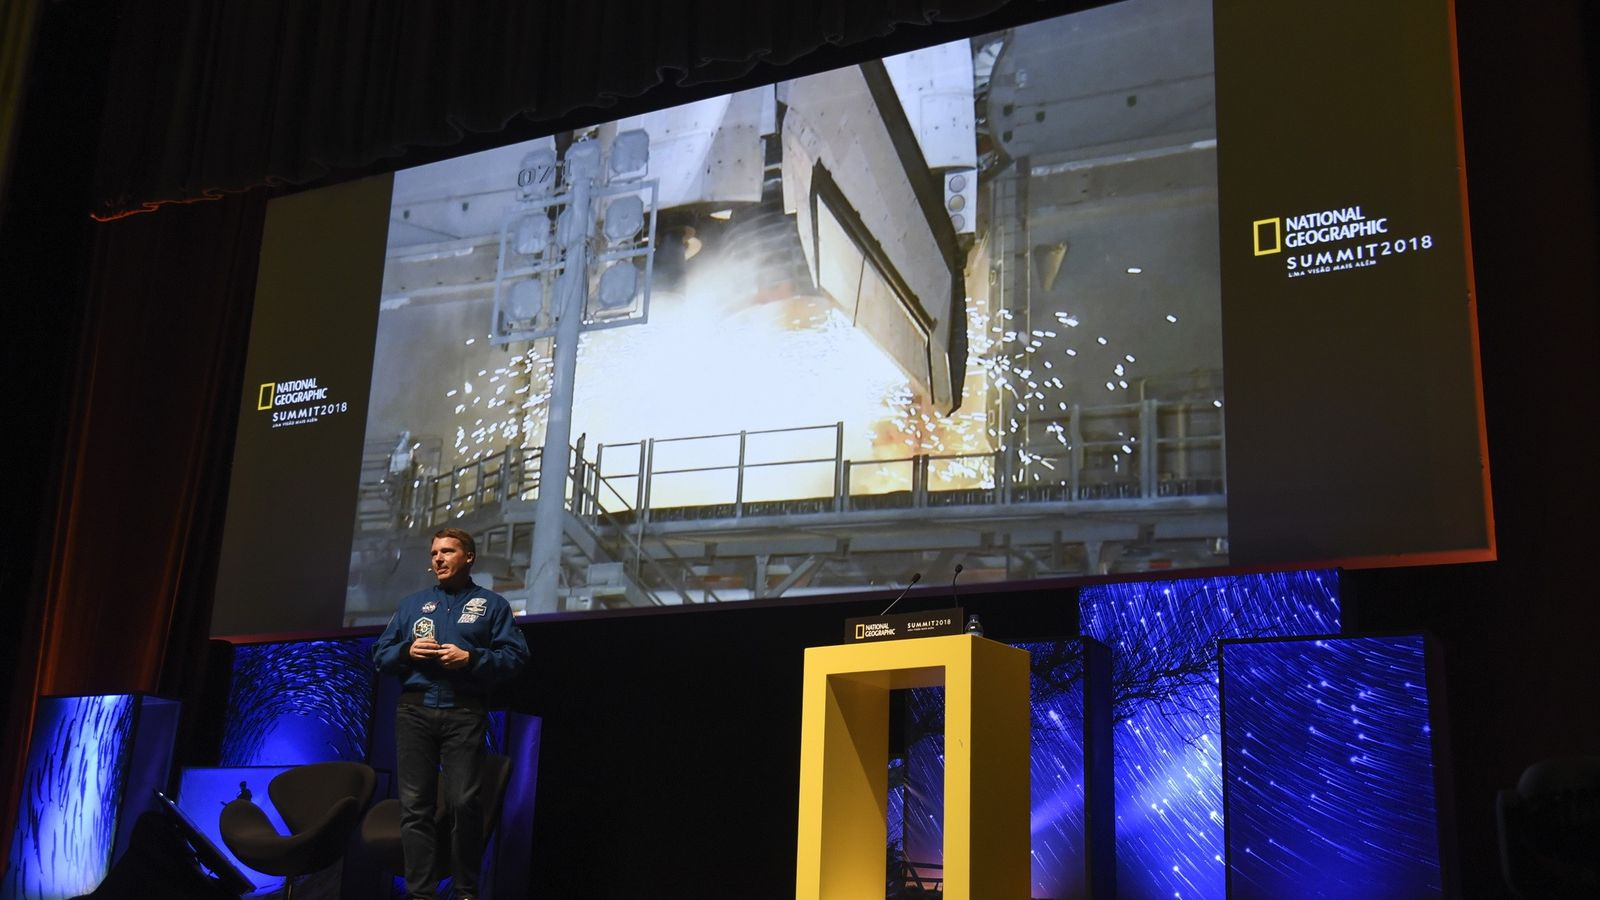 Terry Virts no palco do National Geographic Summit 2018